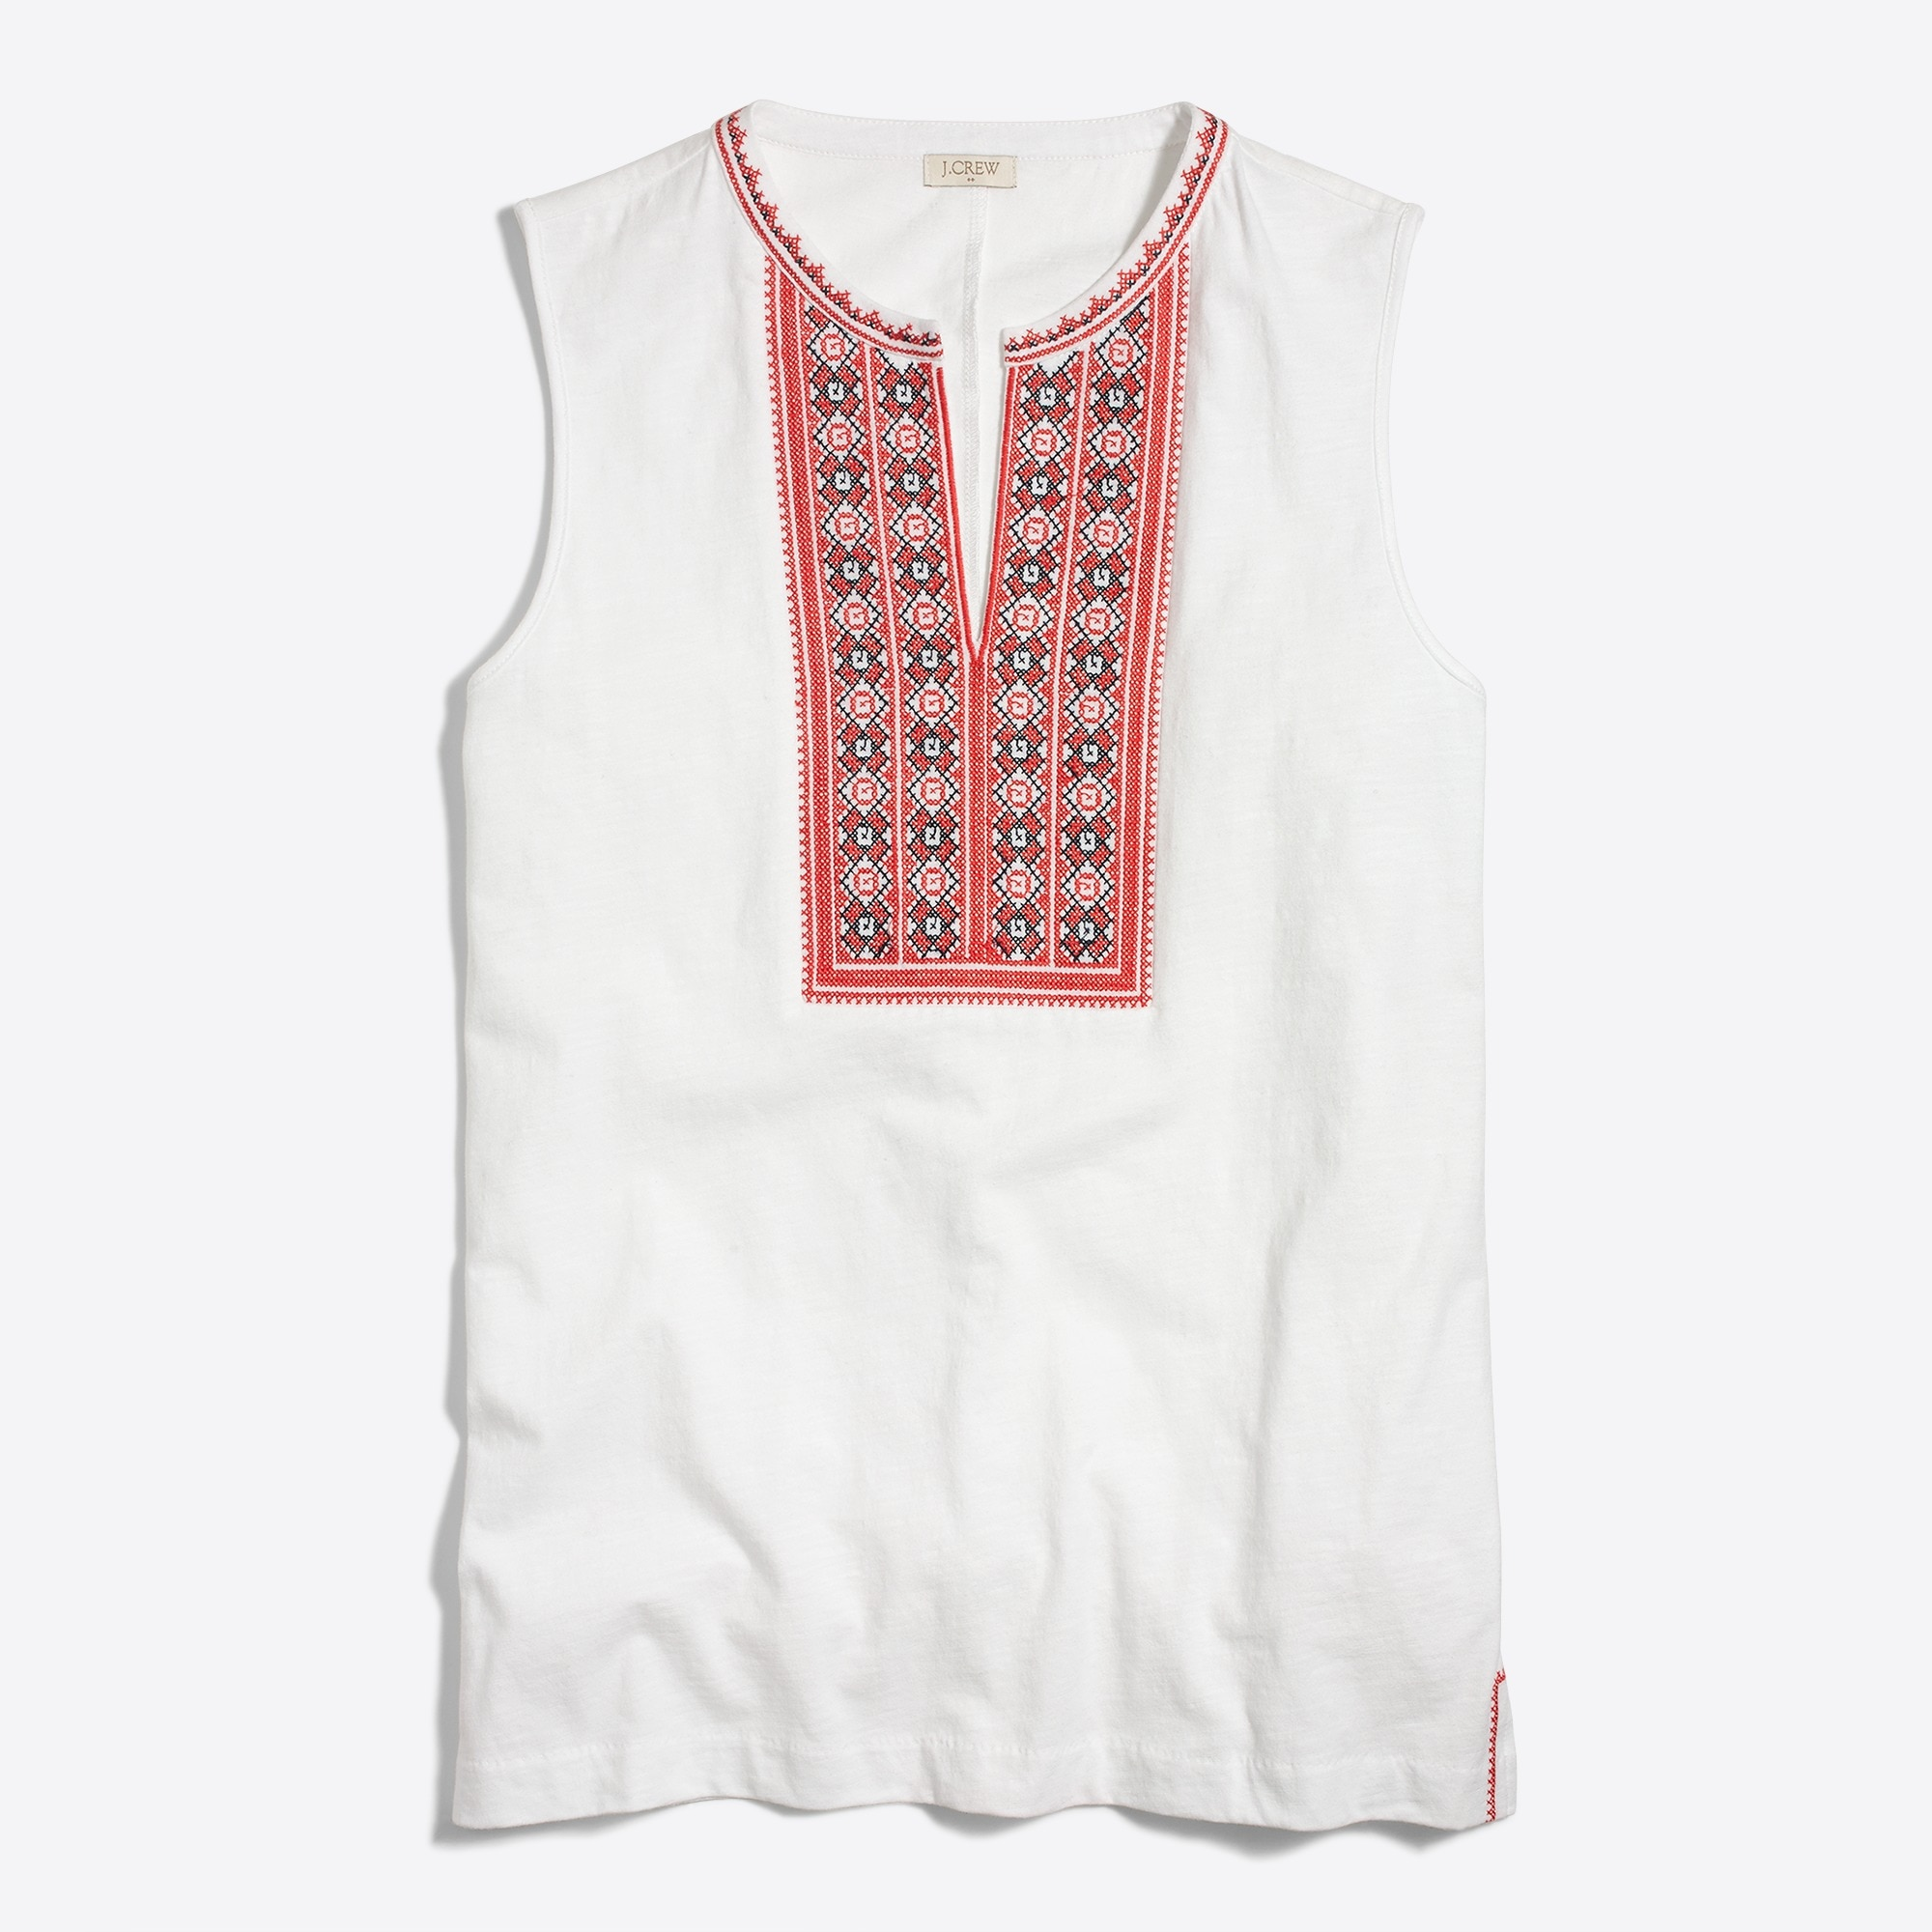 Image 2 for Embroidered placket tank top